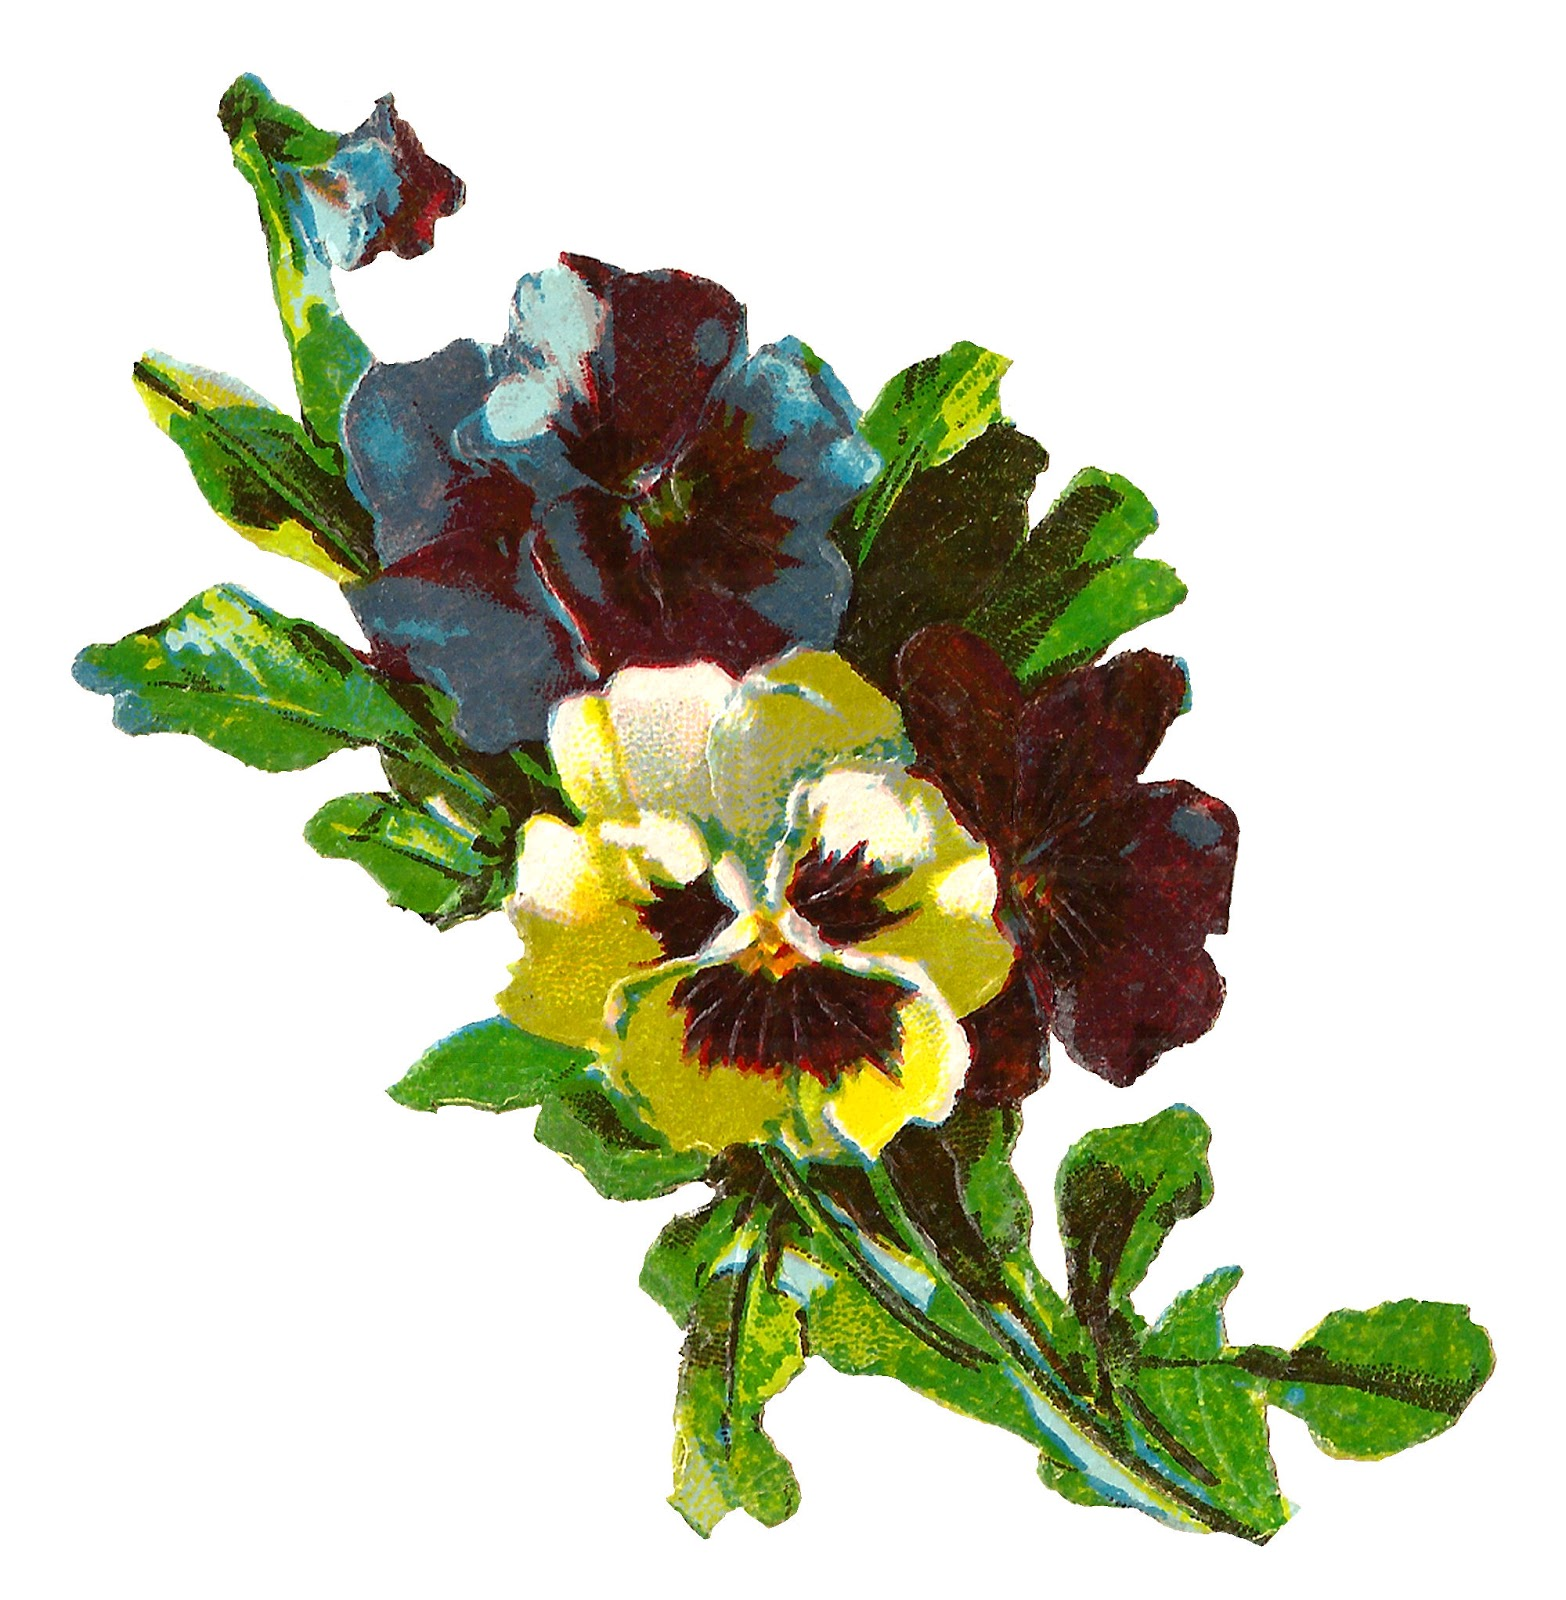 1566x1600 Antique Images Pansy Flower Artwork Image Illustration Botanical